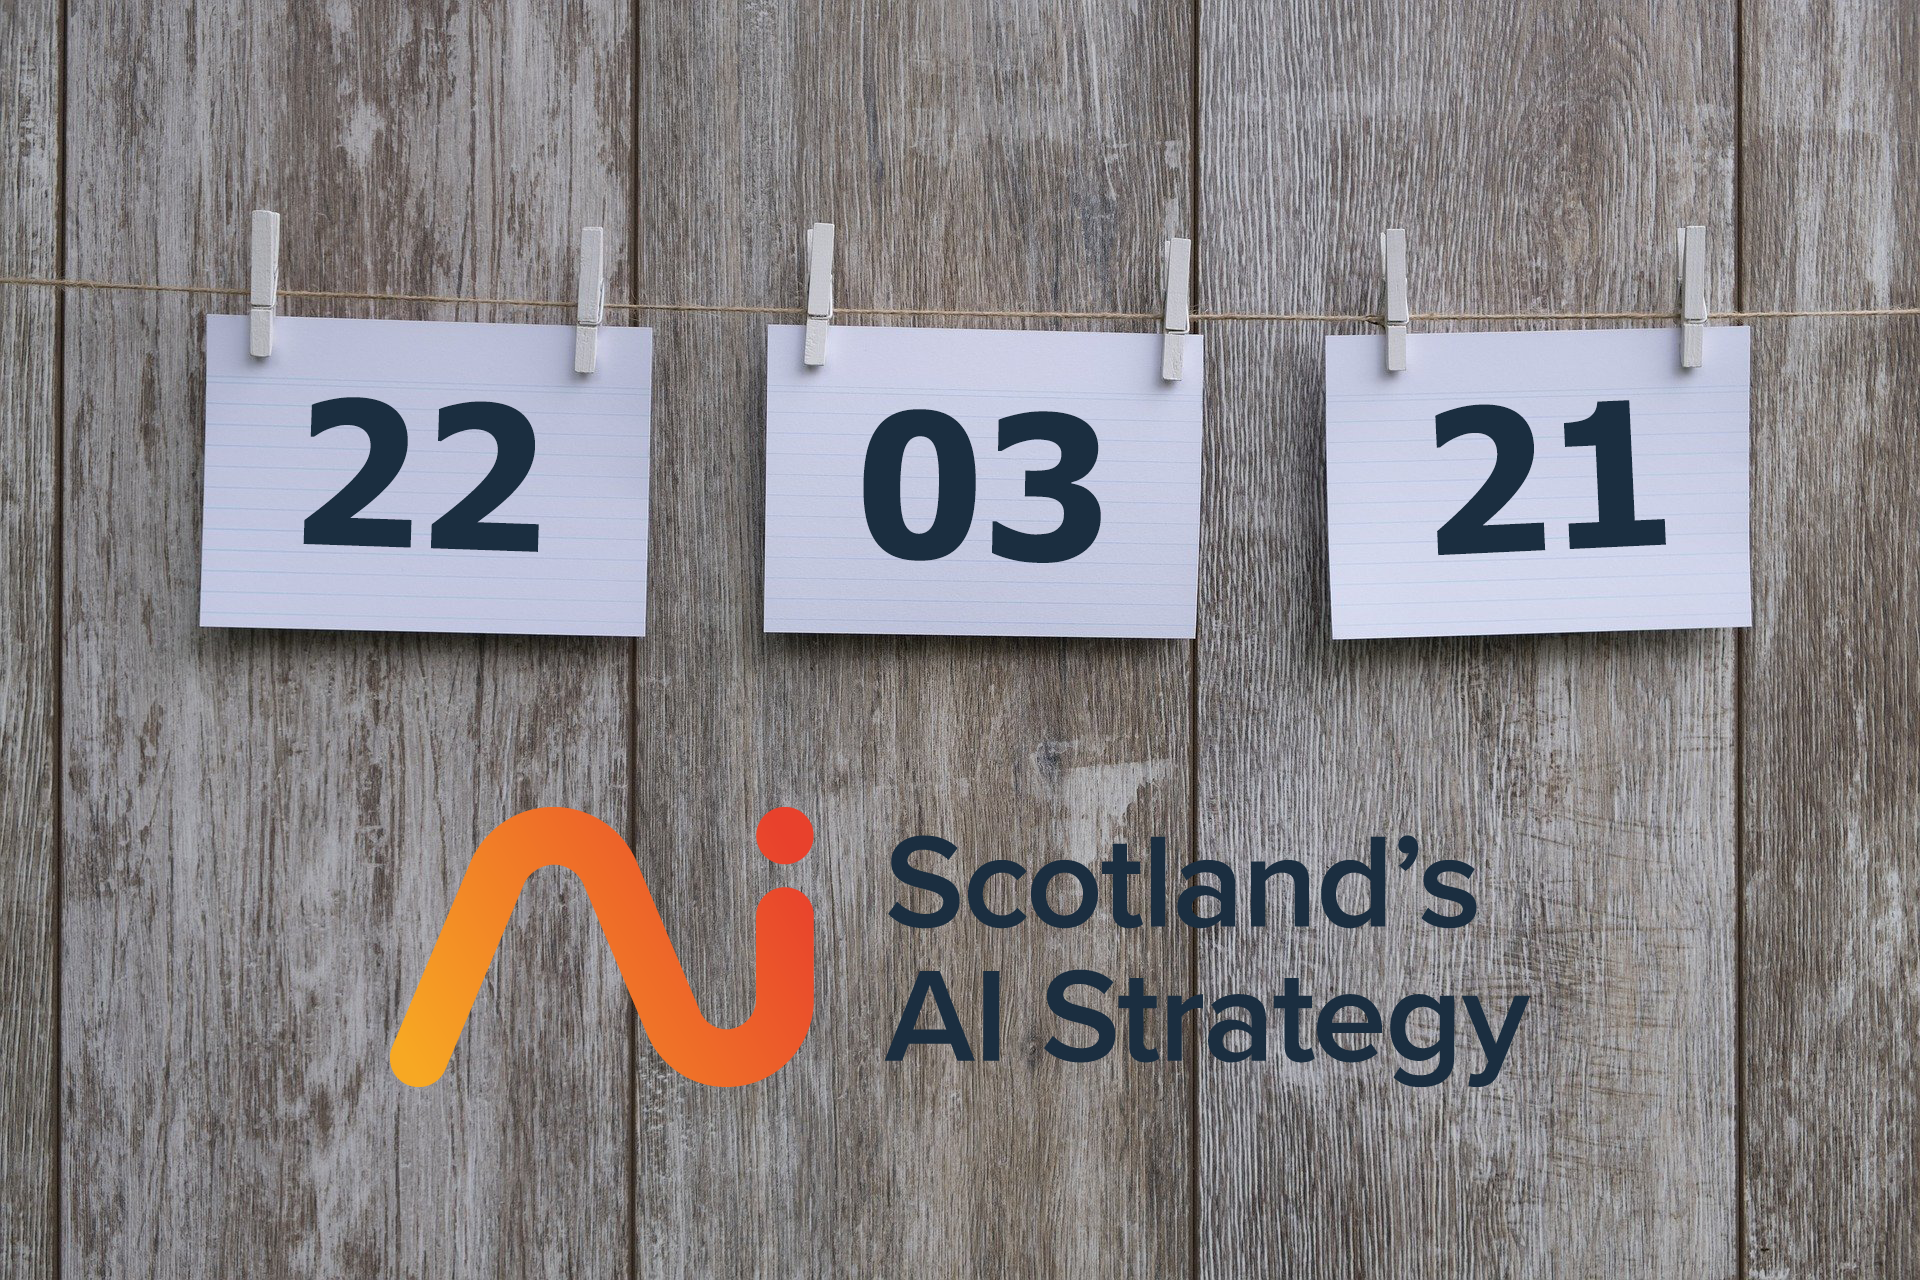 22 03 21 Scotland's AI Strategy